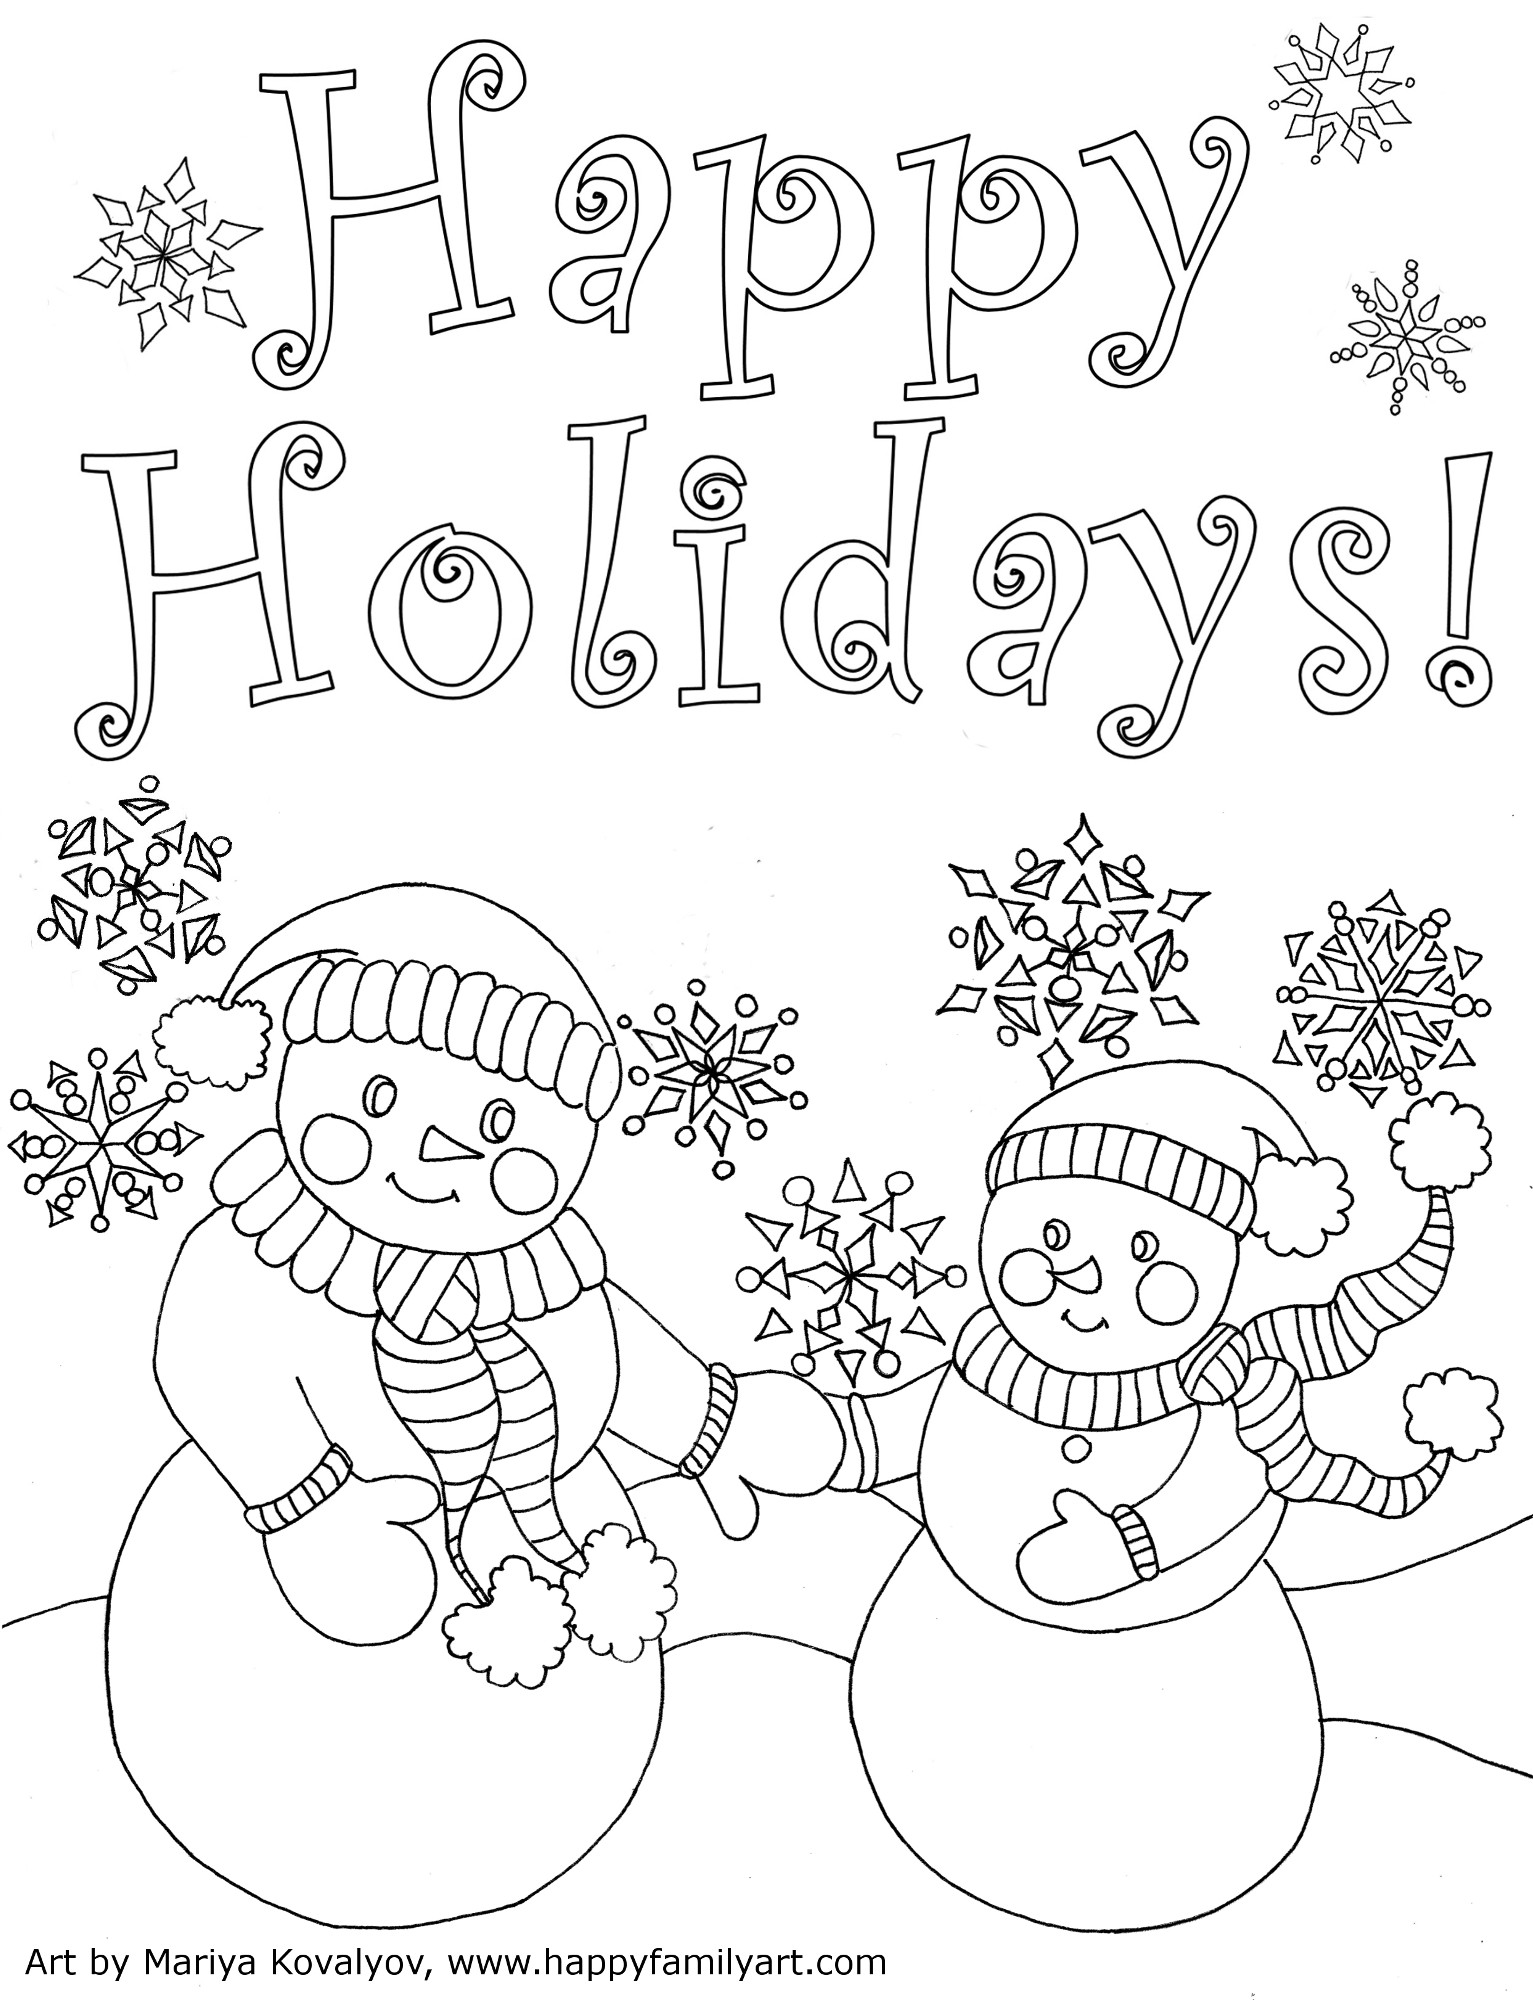 Best ideas about Free Christmas Printable Coloring Sheets For Kids . Save or Pin Happy Family Art original and fun coloring pages Now.